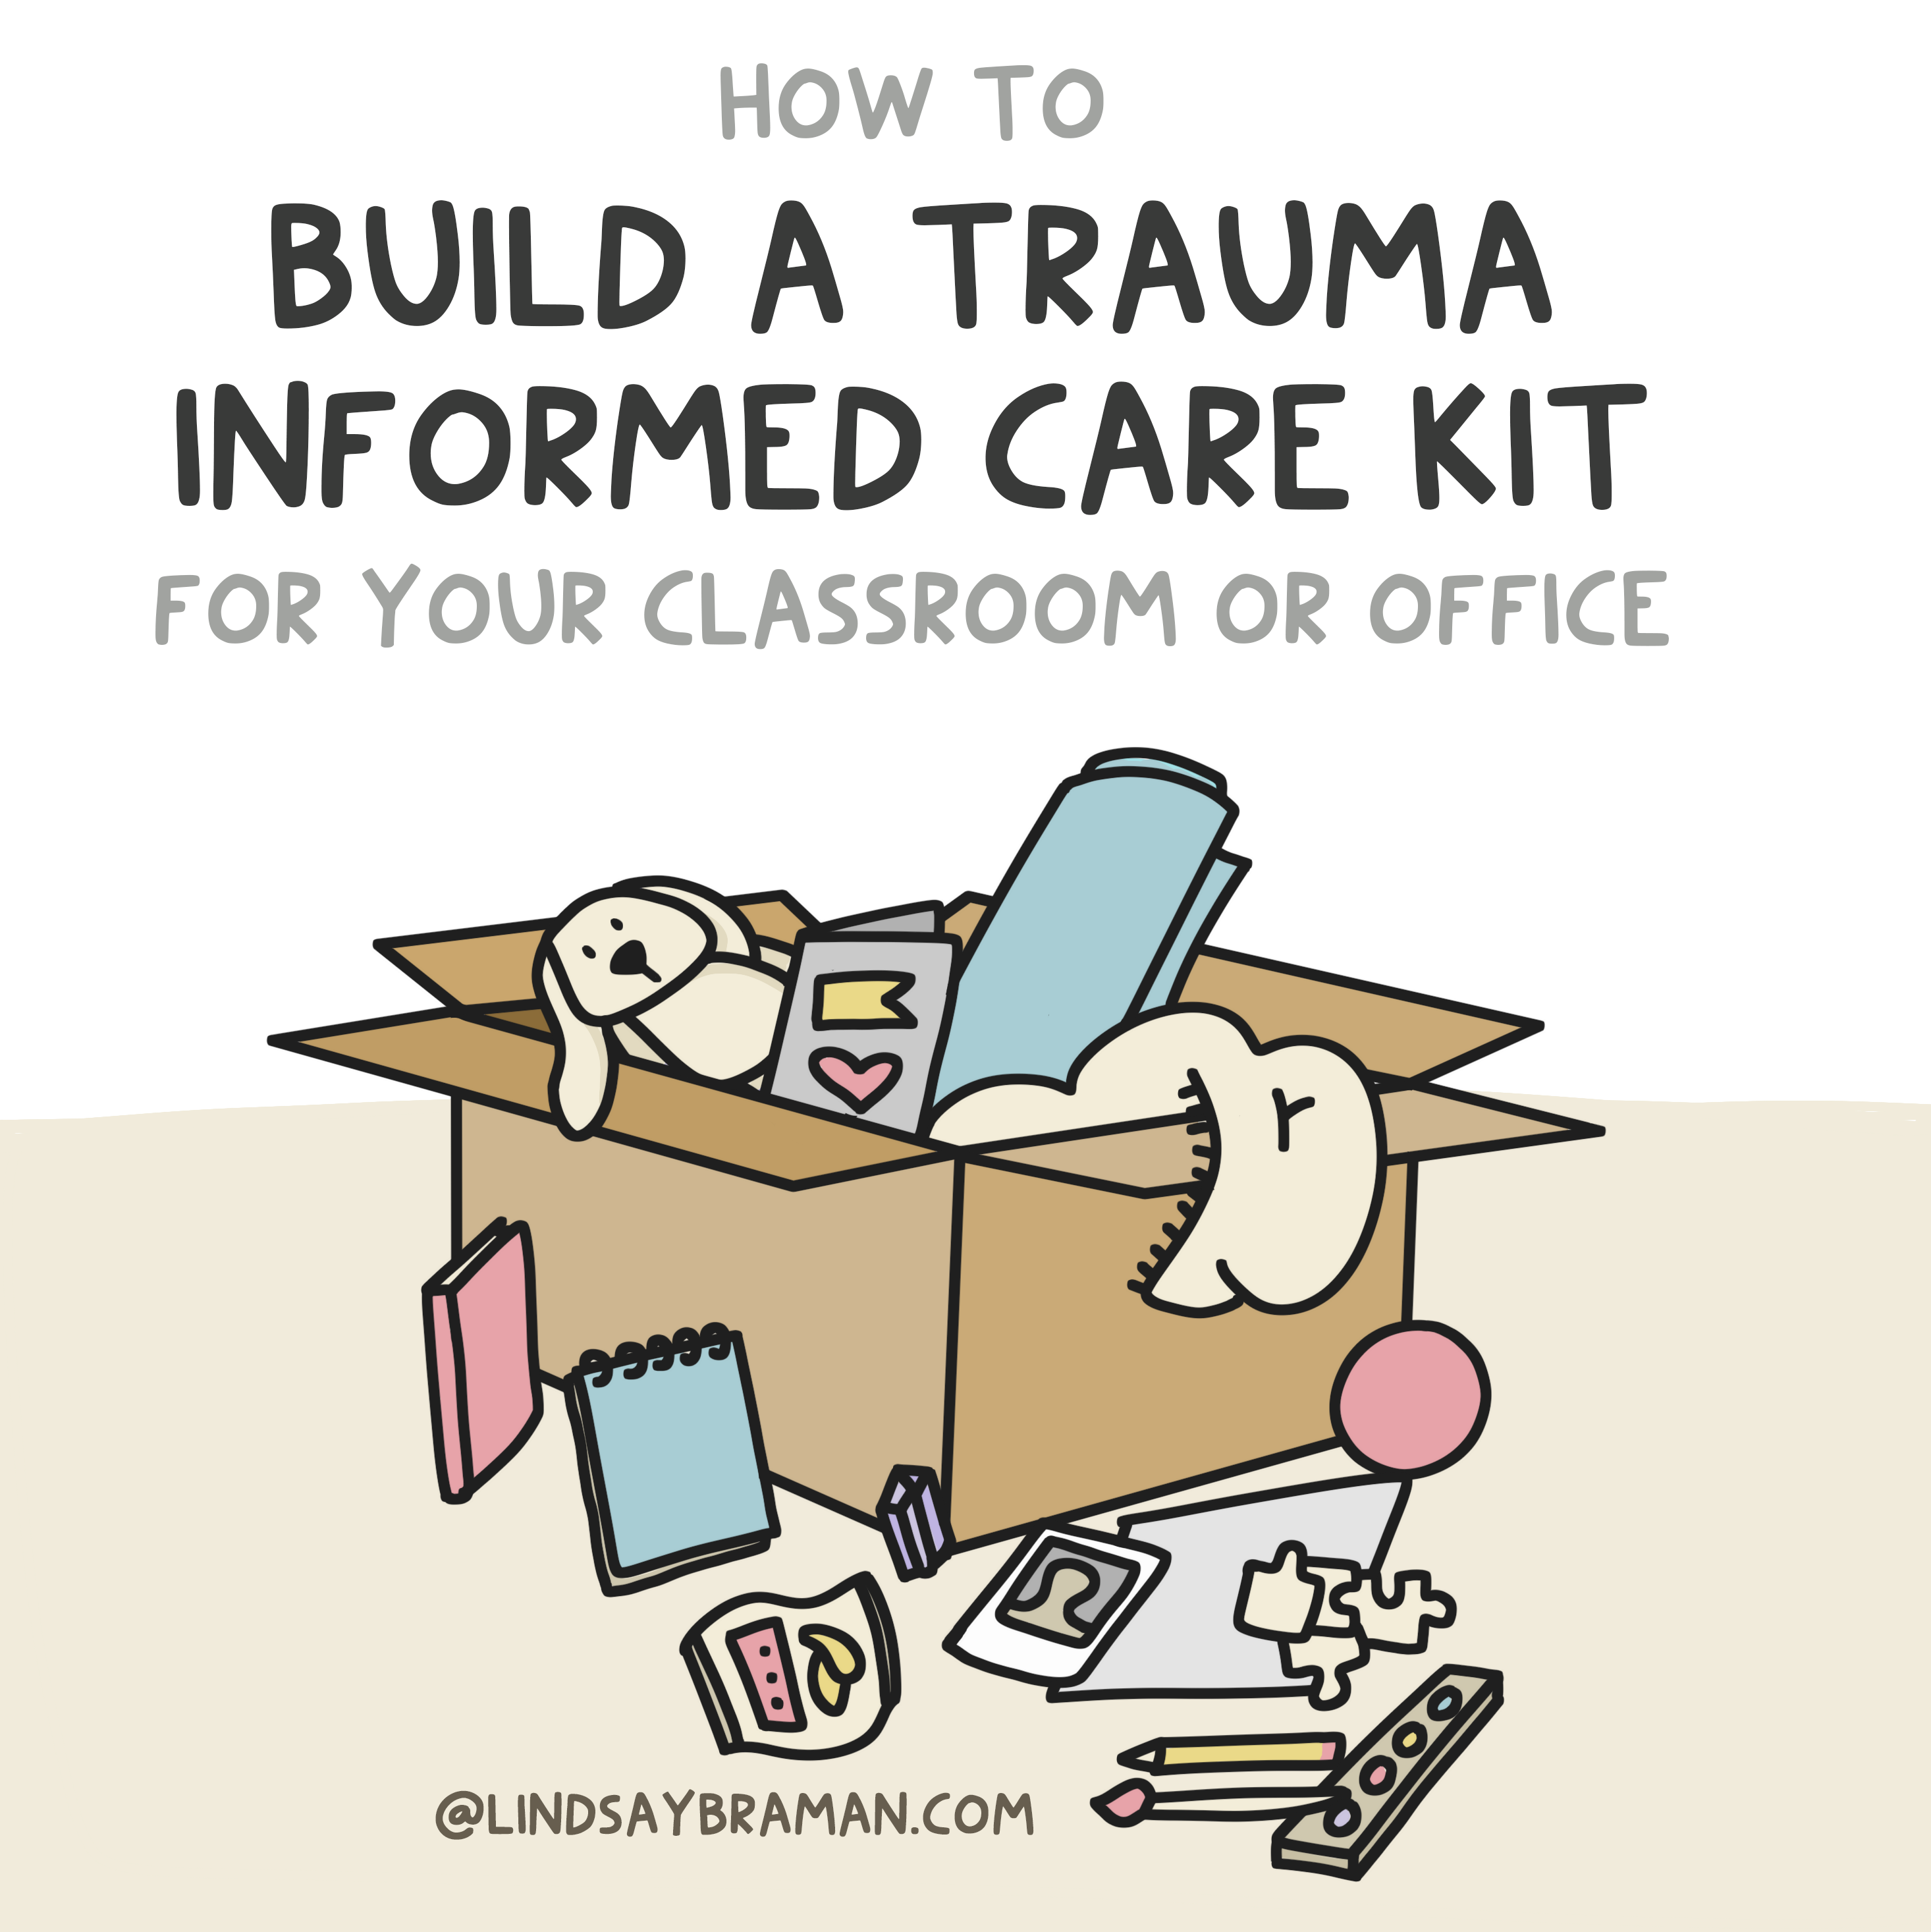 """Image is titled """"How to Build A Trauma Informed Care Kit for Your Classroom or Office."""" Below the title is a cardboard box sitting on a tan surface. Items are spilling out of the box: journals, notepads, paint and a paintbrush, a pencil, snacks, puzzle pieces, a polaroid, a ball, a yoga mat, a blanket, a stuffed animal, and a card."""